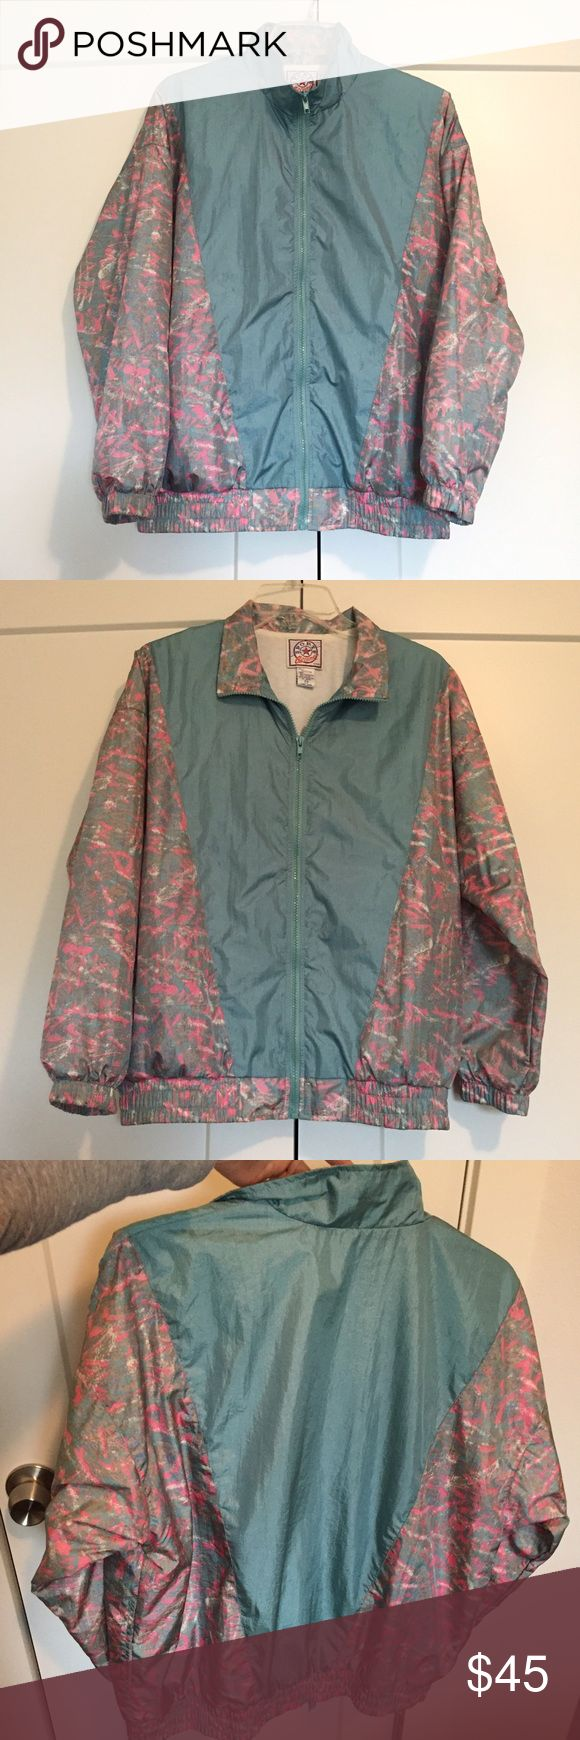 Rare Vintage Windbreaker Zip-Up Jacket Old school vintage lined jacket straight out of the 80's in excellent vintage condition. This is amazing and actually pretty warm for how light it is. Size is Petite medium, fits a small too just depends on desired fit :) No trades 💕 brand is called Sports Accent and outer material is nylon / lining is polyester and cotton. Vintage Jackets & Coats